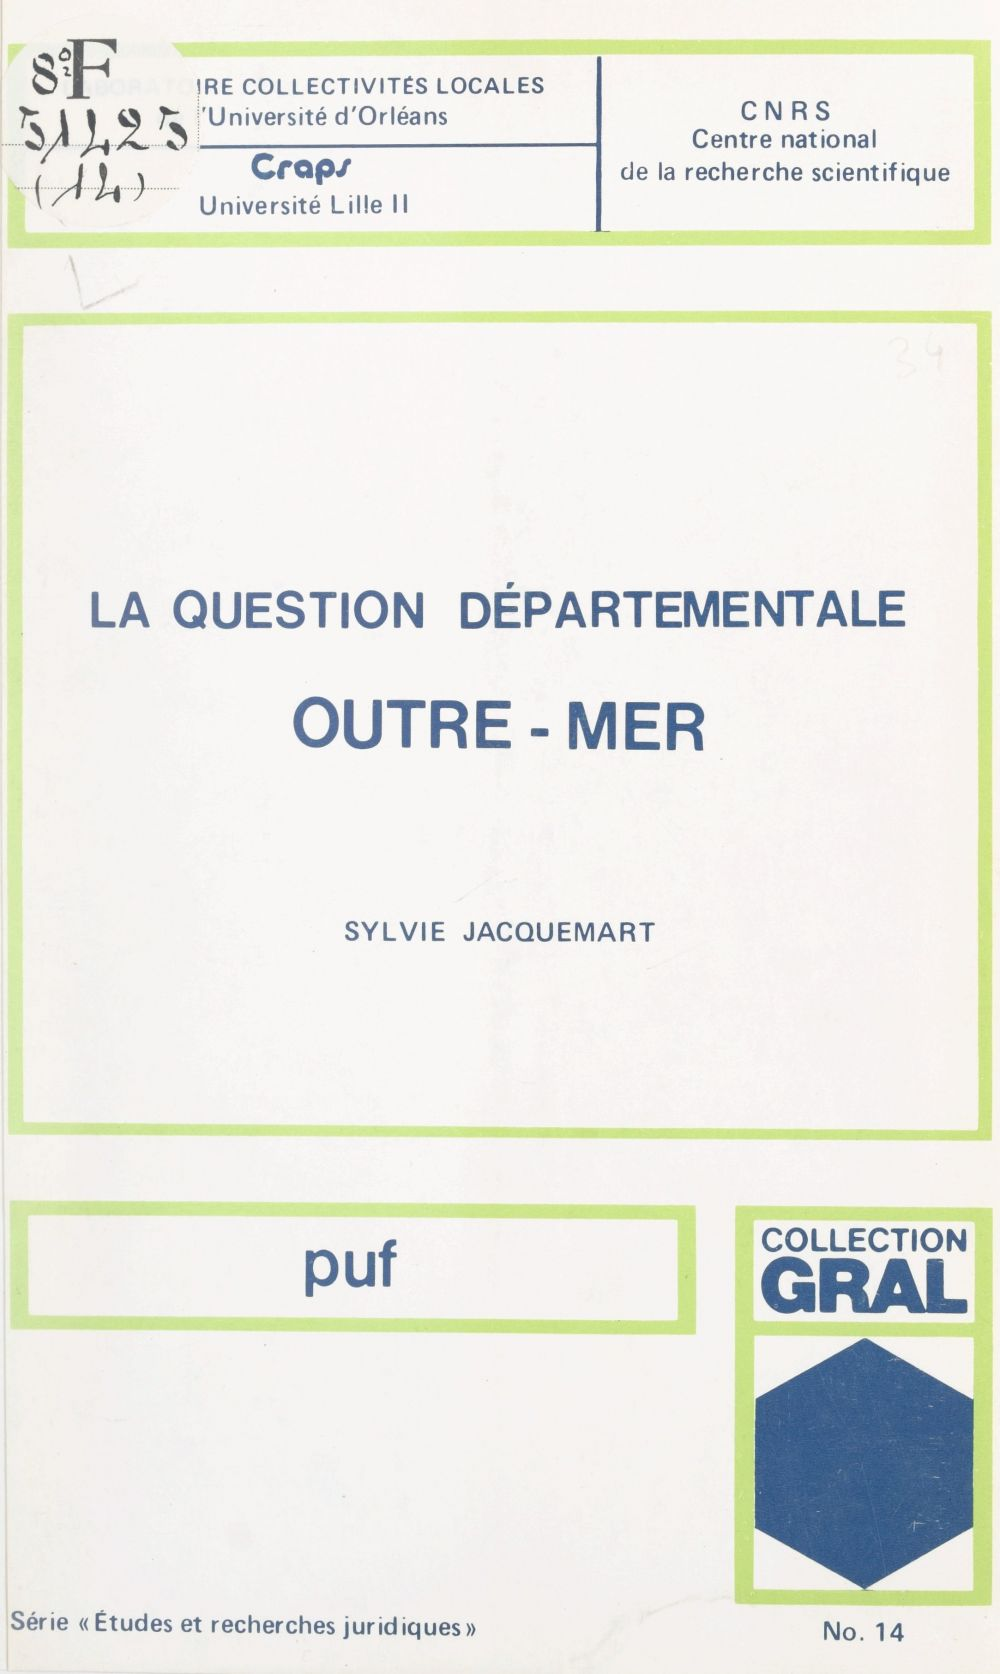 La question départementale outre-mer